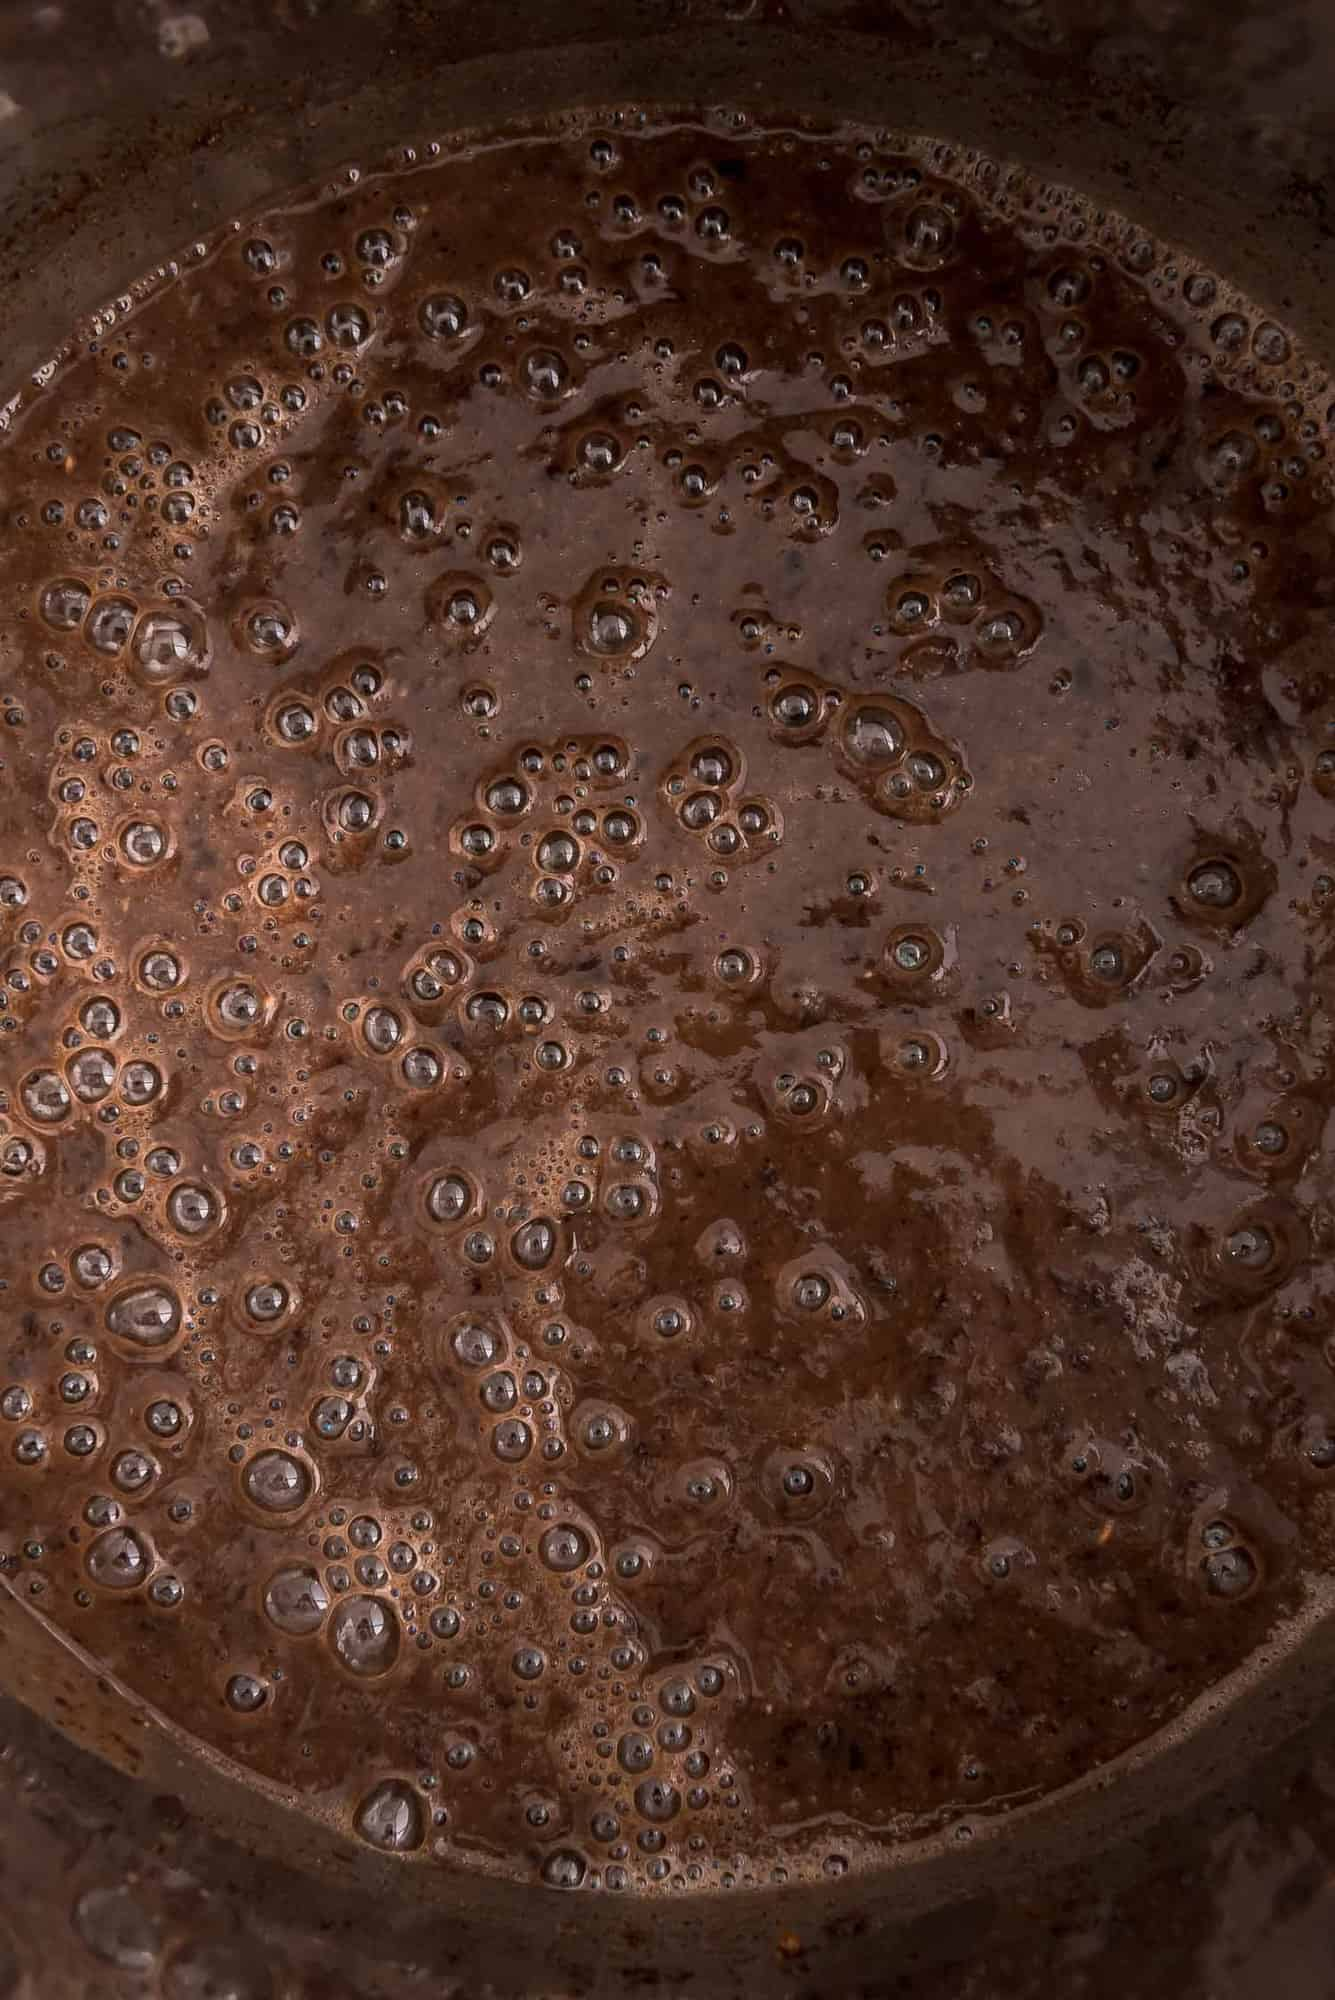 Close up view of black bean soup in an Instant Pot.